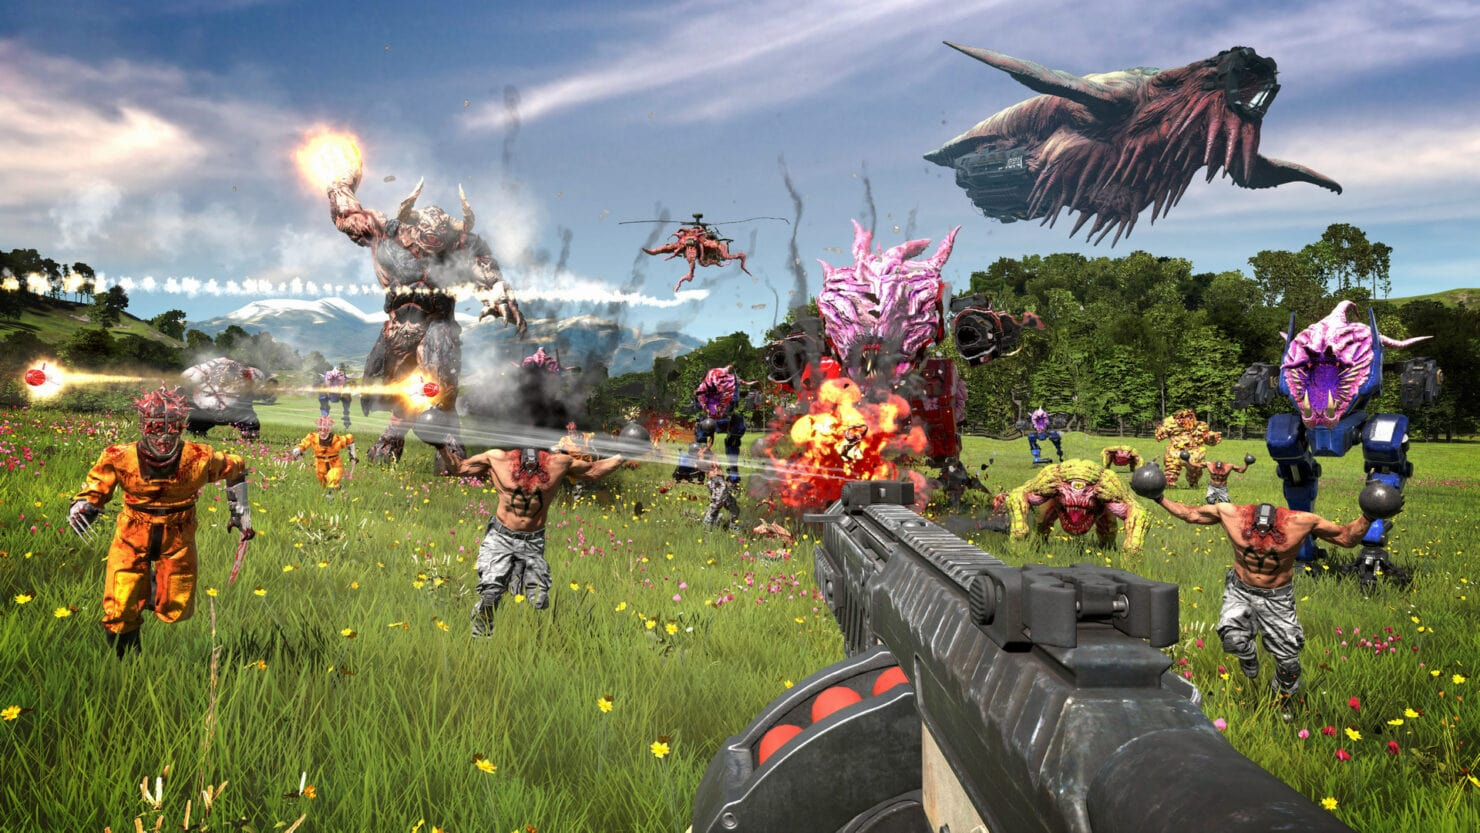 serious sam 4 screenshots new6 1480x833 min